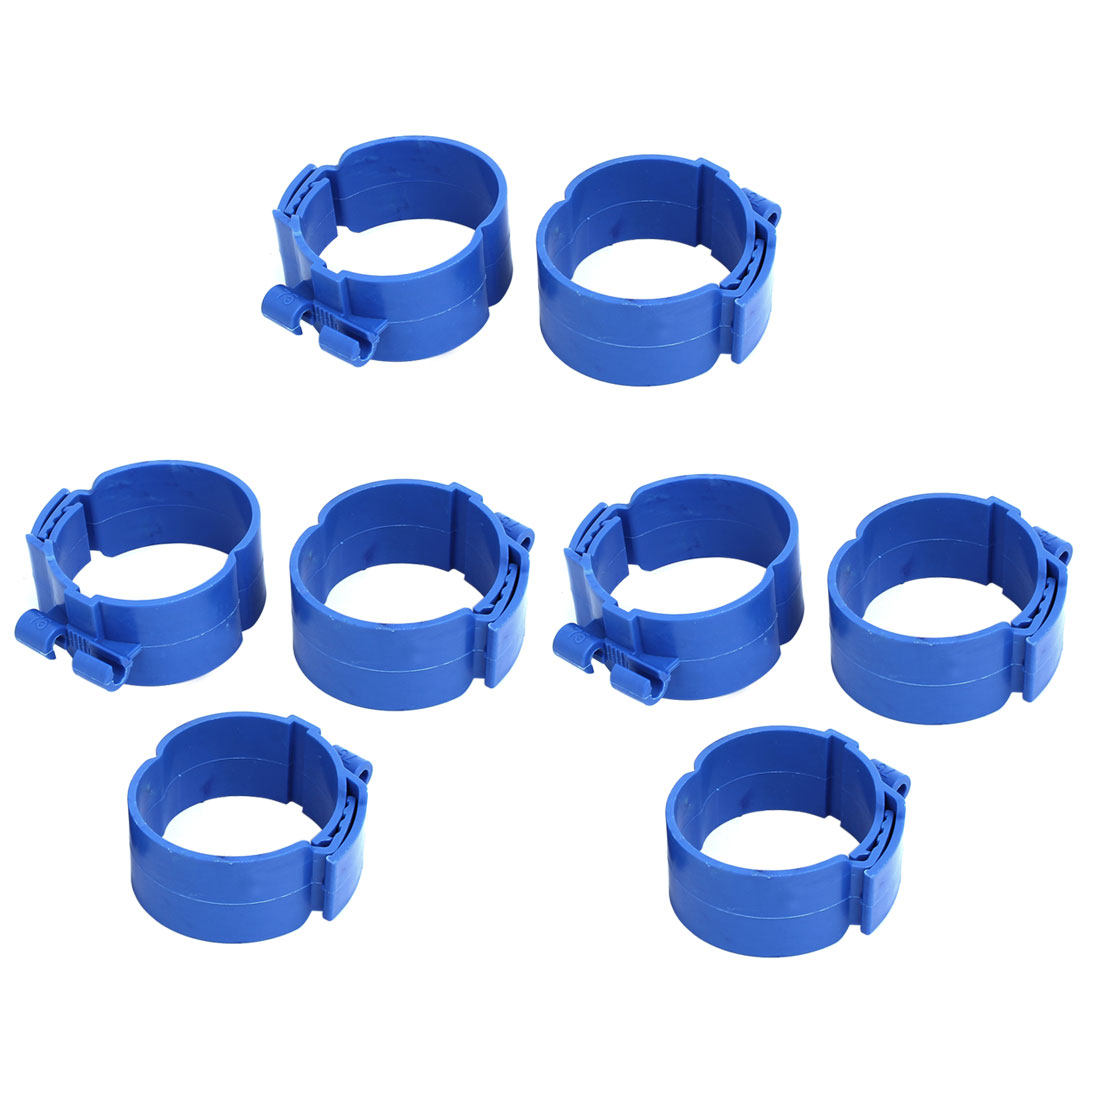 75mm Dia 38mm Width Central Air Conditioner Pipe Clip Clamp Blue 8pcs